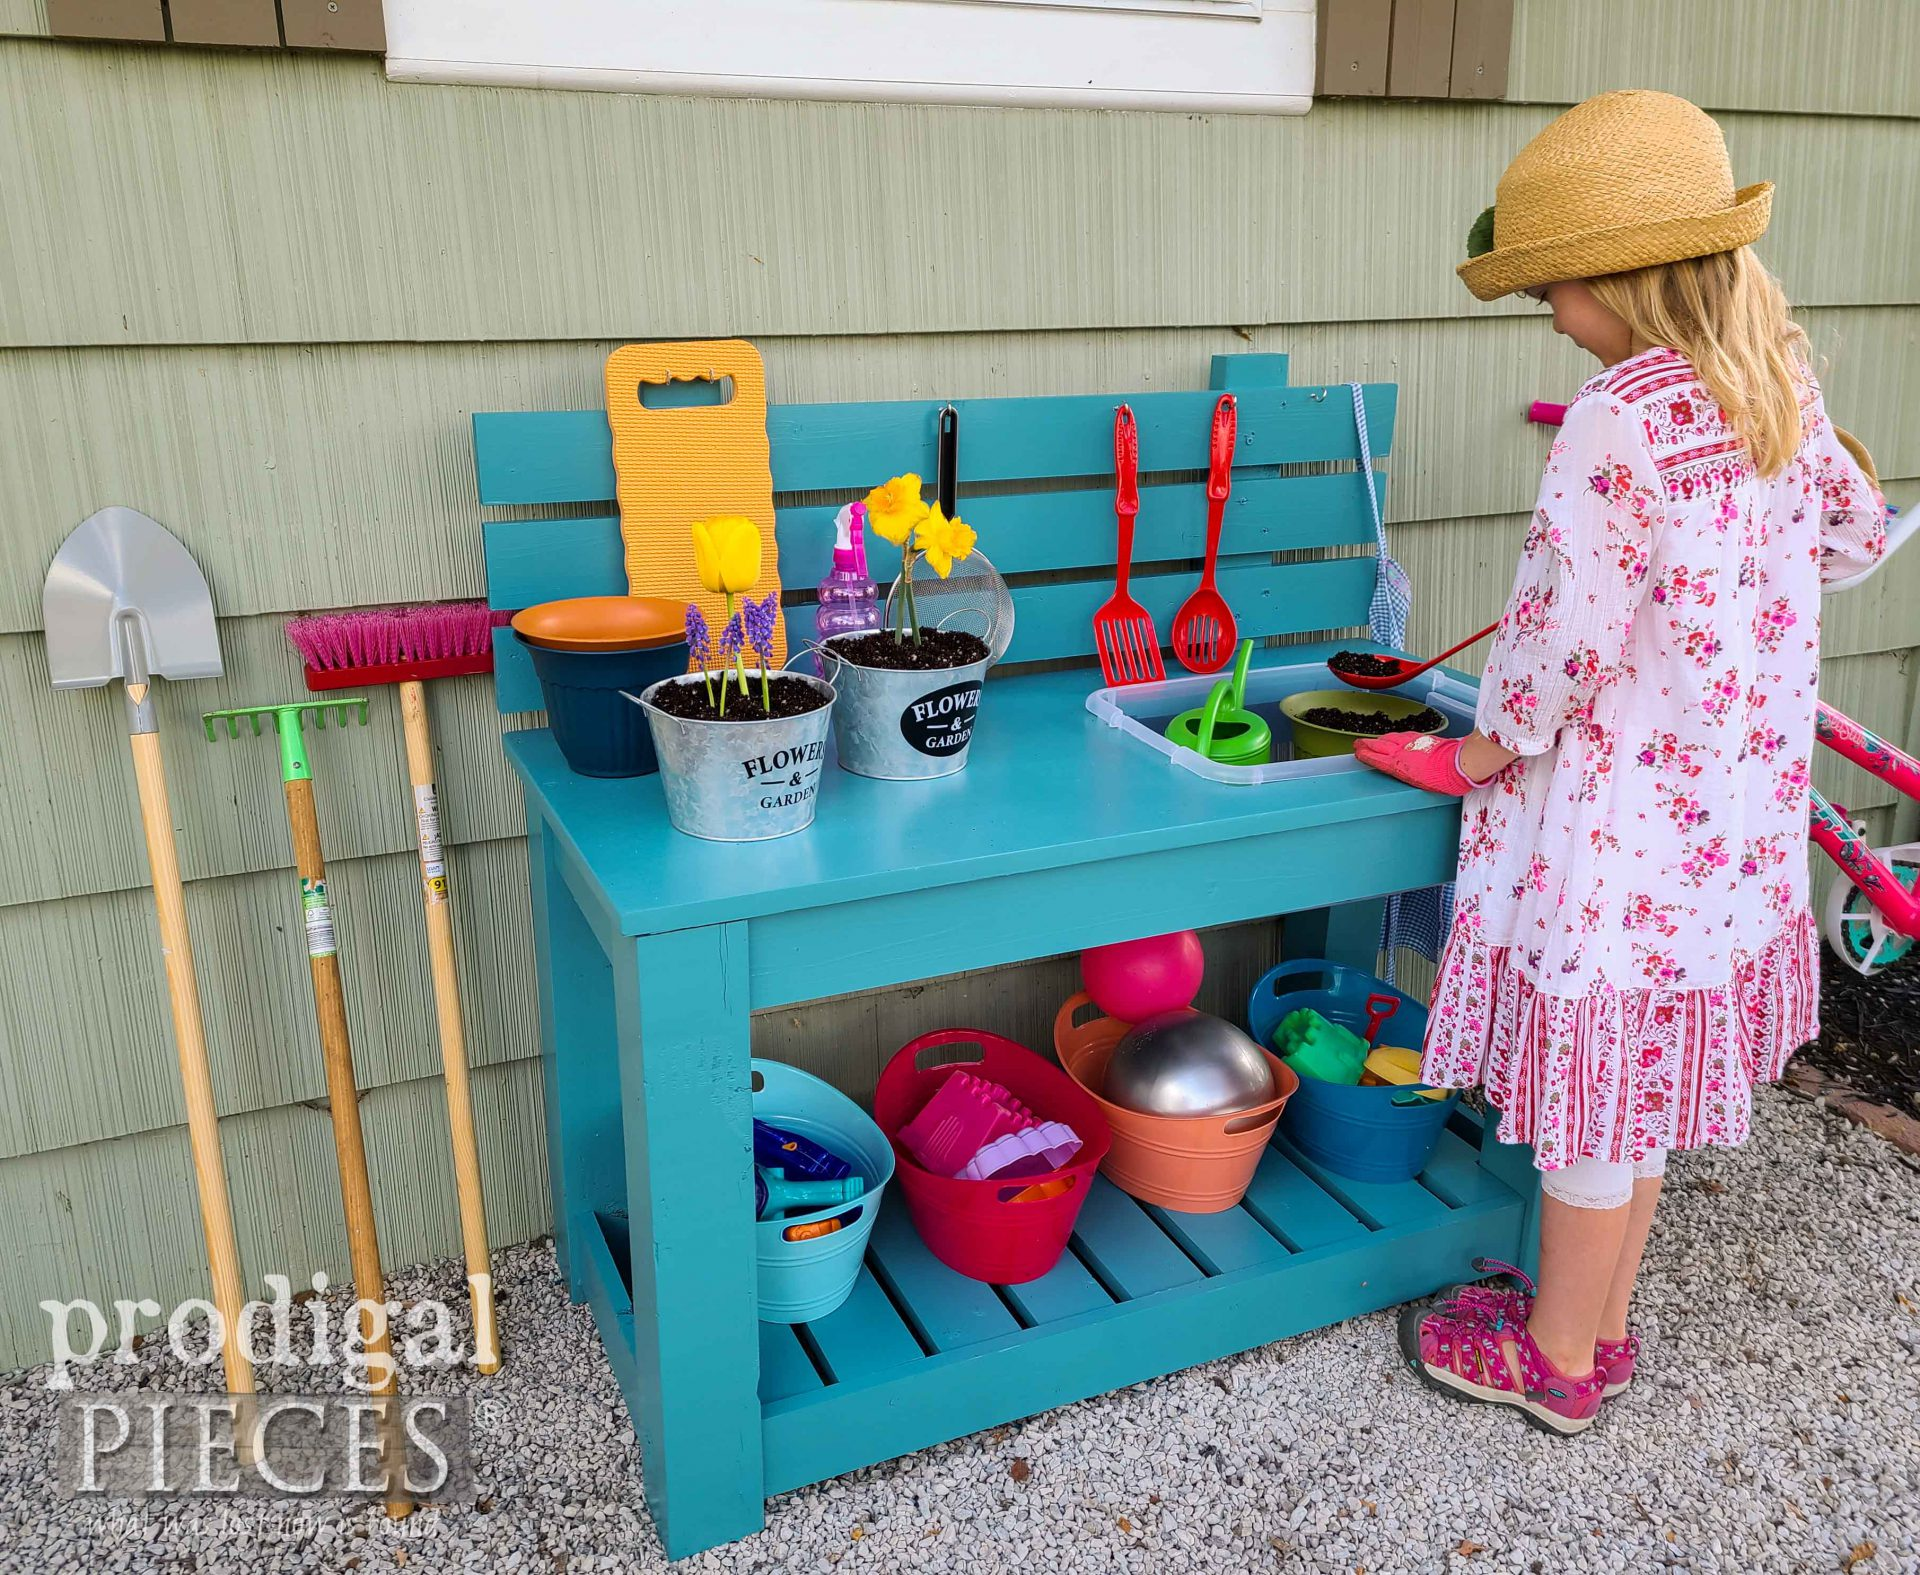 Kids Potting Bench from Upcycled Sewing Desk Top by JC & Larissa Haynes of Prodigal Pieces | prodigalpieces.com #prodigalpieces #diy #upcycled #garden #toys